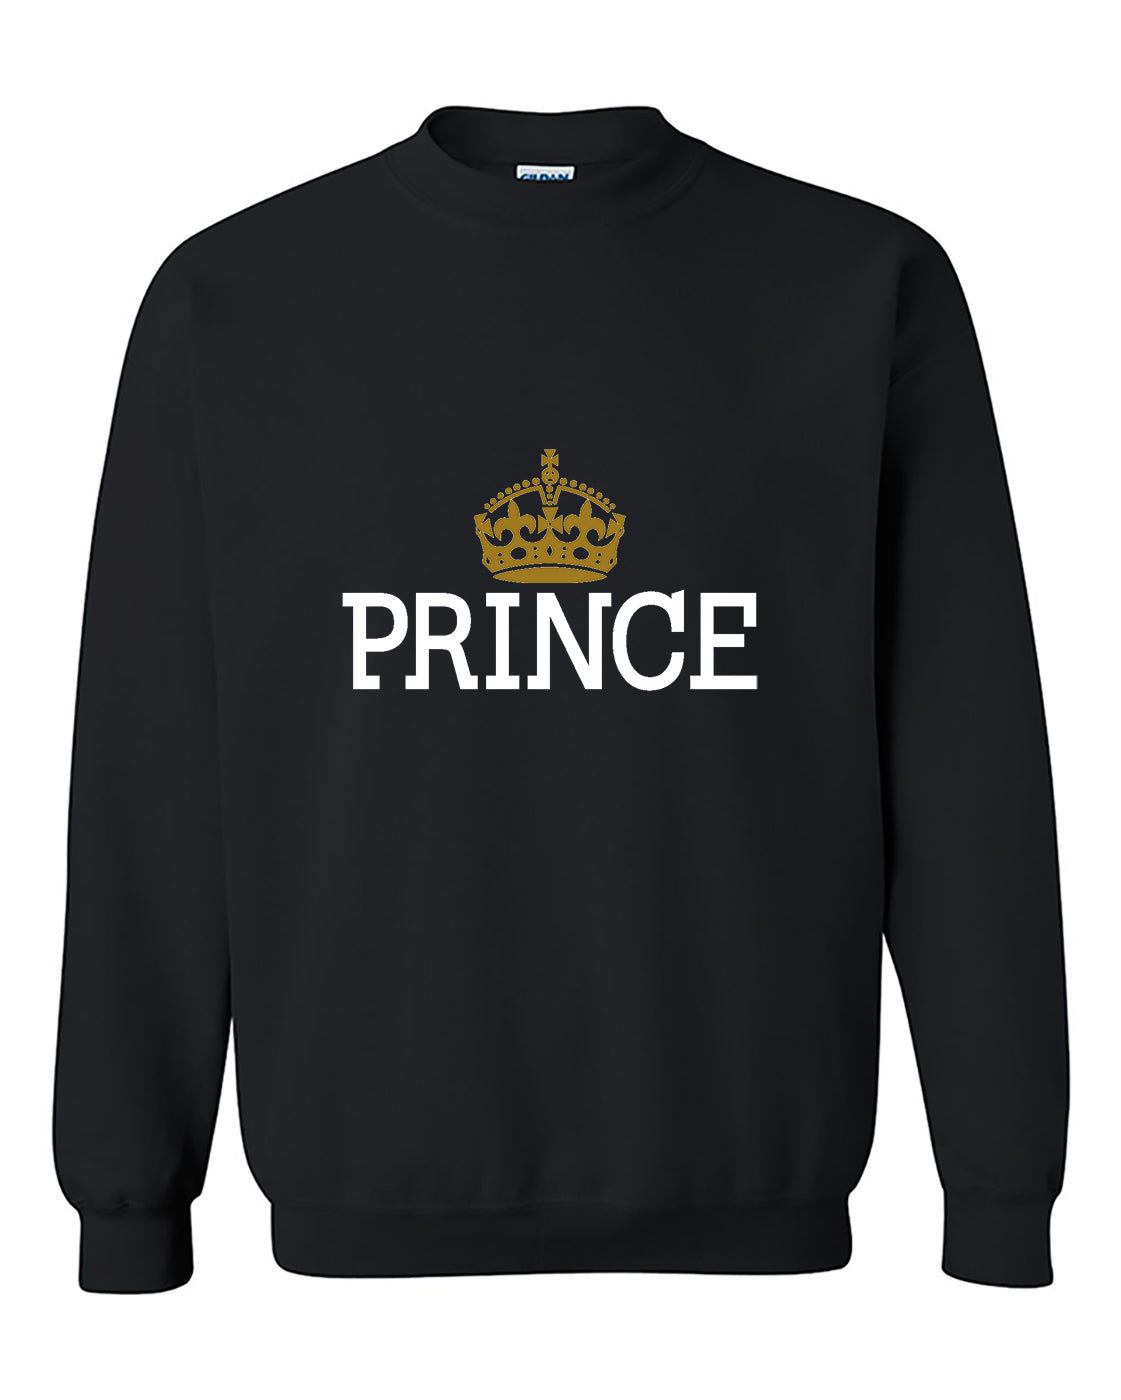 Prince Crown Couples Matching s Valentine's Day Gift Crewneck Sweater